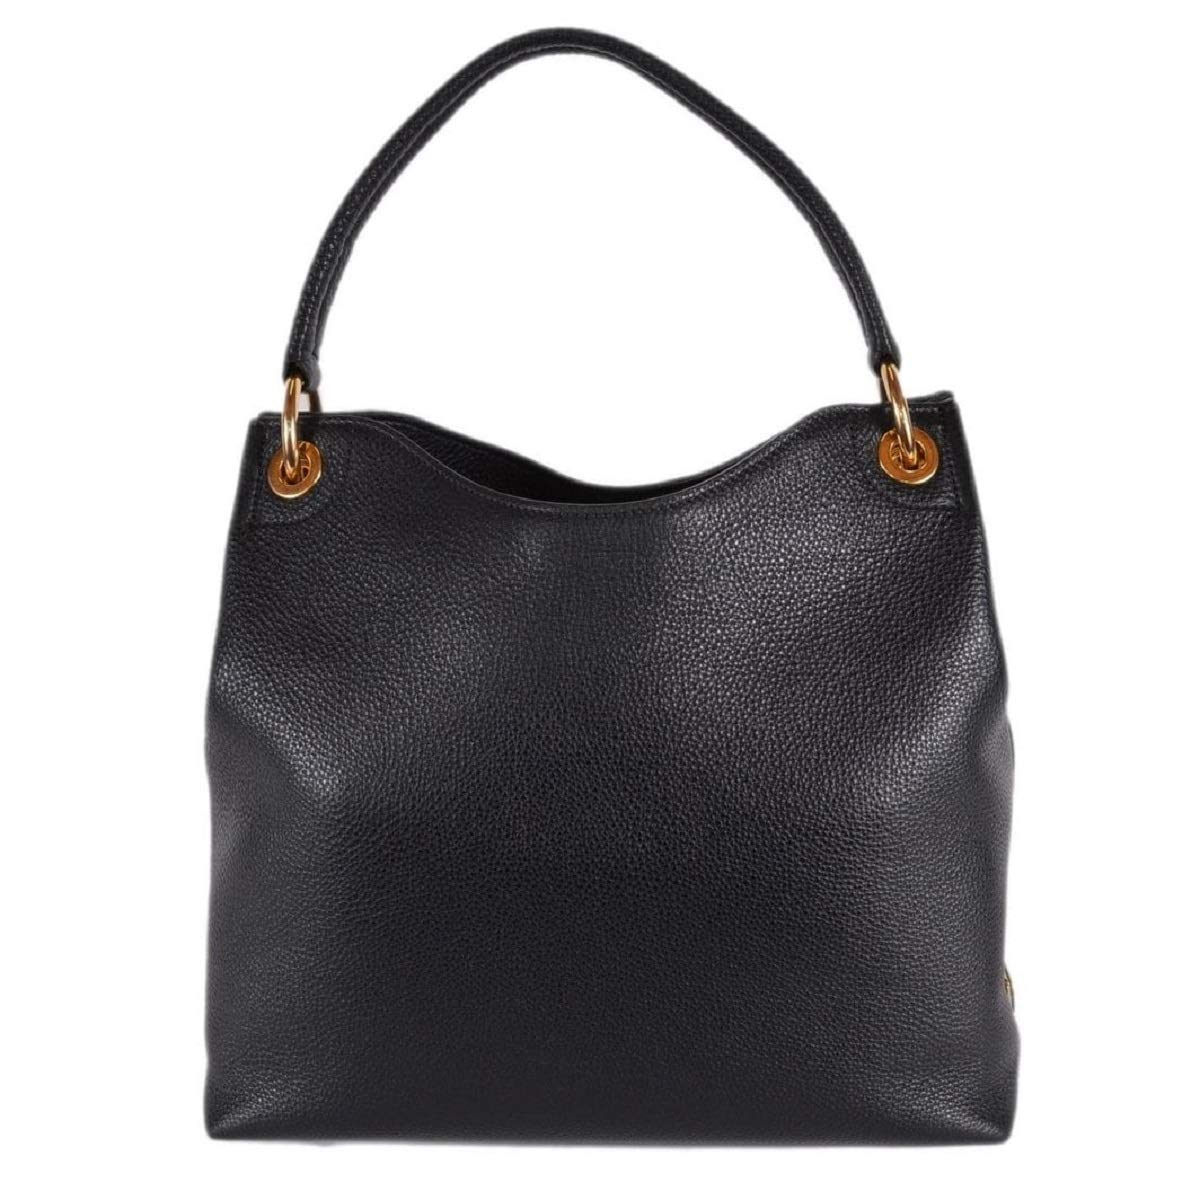 6f08152430 Prada Women s Vitello Daino Black Leather Satchel Bag Handbag 1BC051   Handbags  Amazon.com